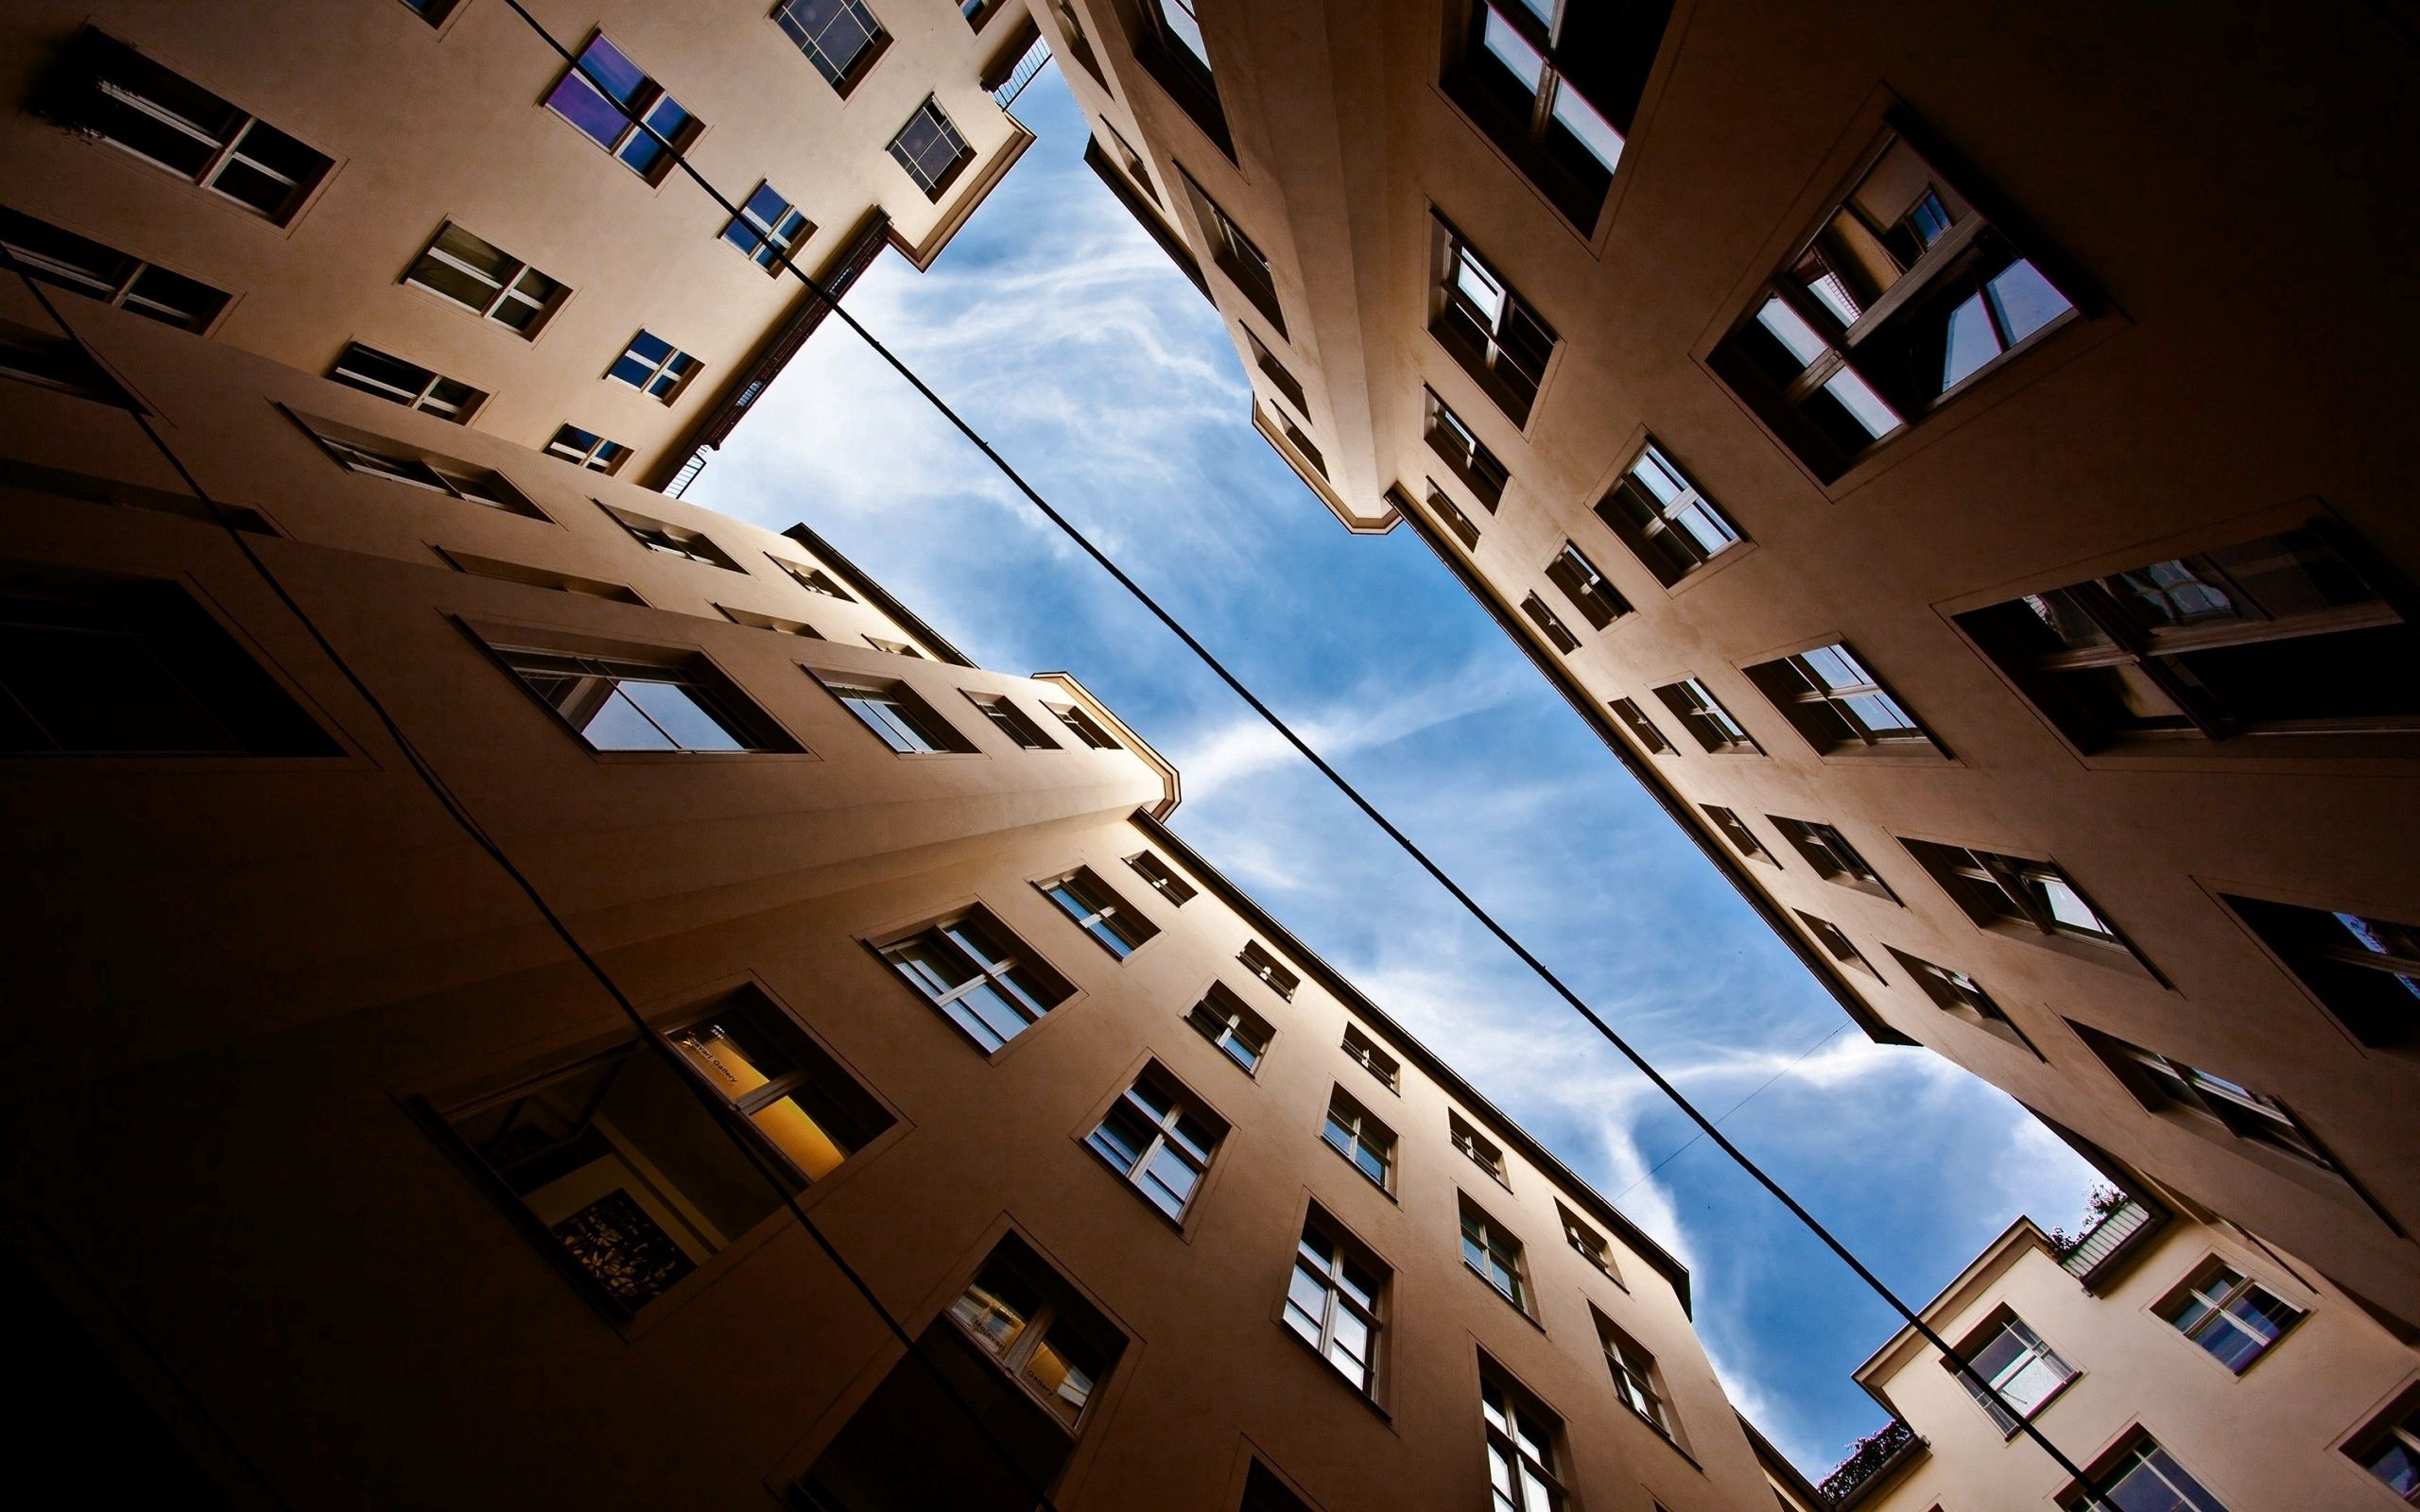 74062 download wallpaper Cities, Sky, Up, Building, Top, Multi-Storey, Multistory screensavers and pictures for free